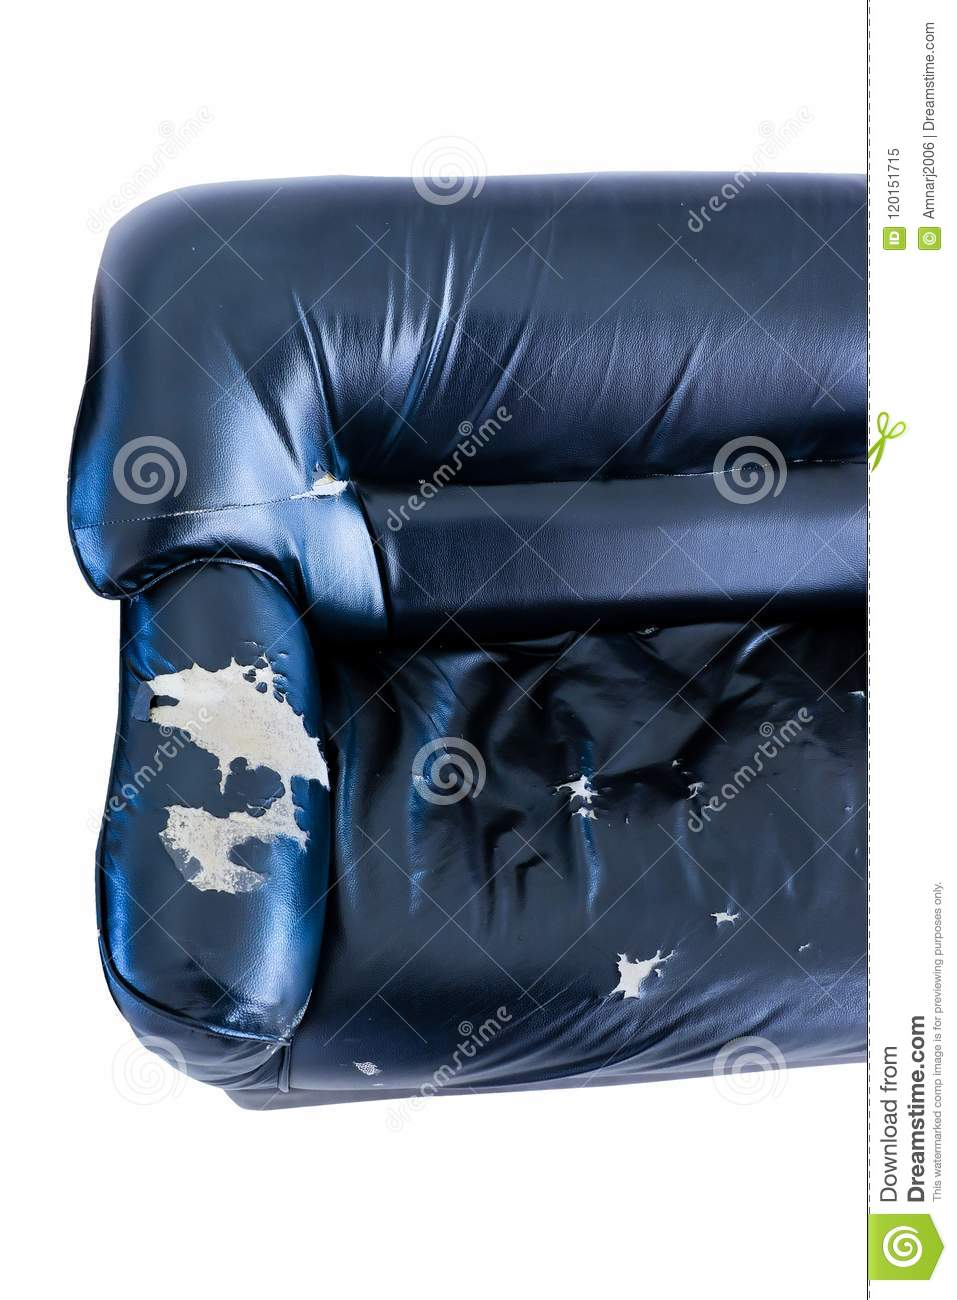 Retro Inflatable Sofa Vintage Old Grung Ripped Abandoned Couch Stock Image Image Of